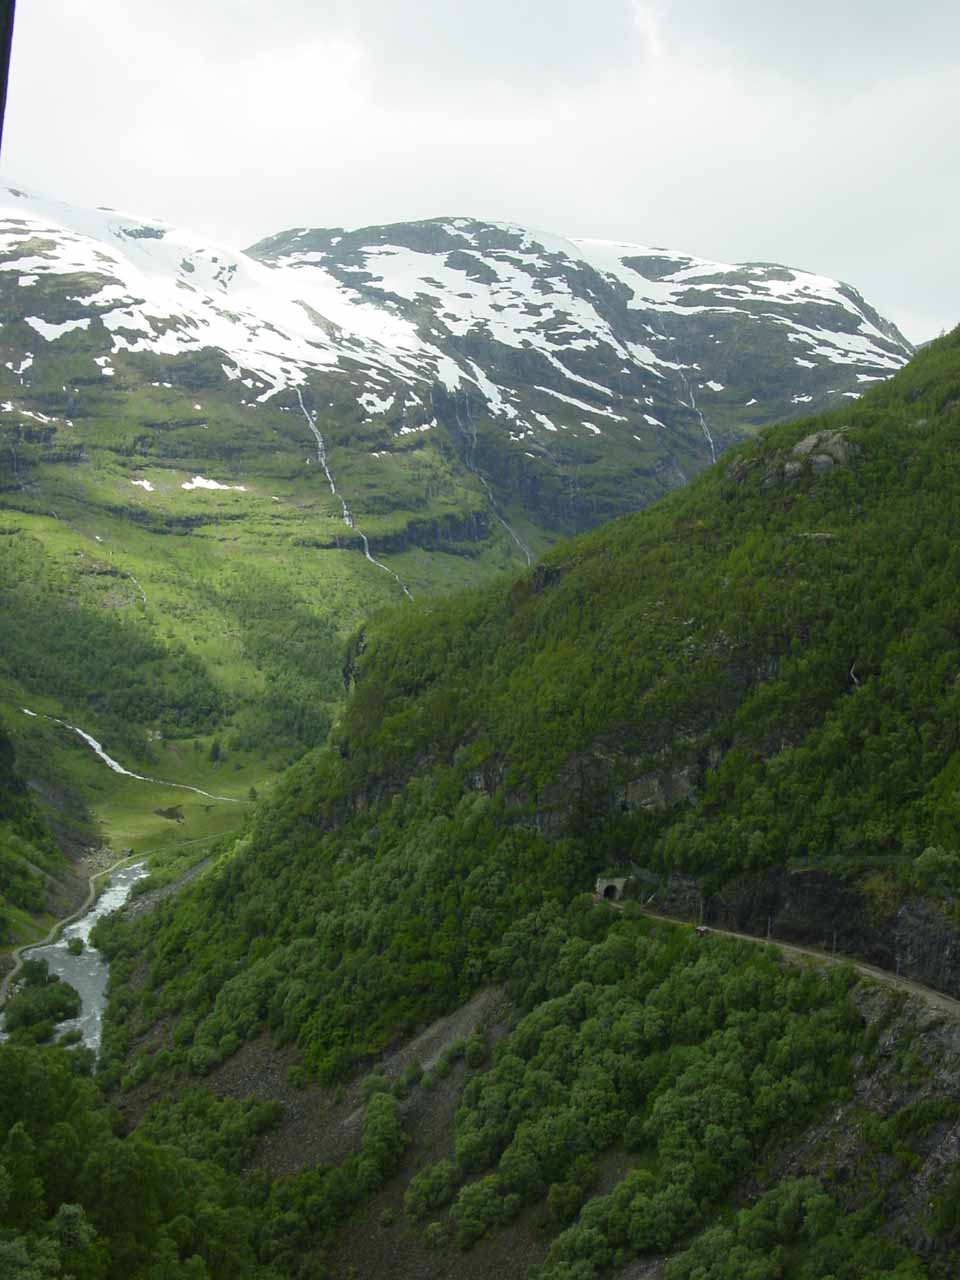 Looking downwards towards Flamsdalen and another tunnel as we were headed back to Flam